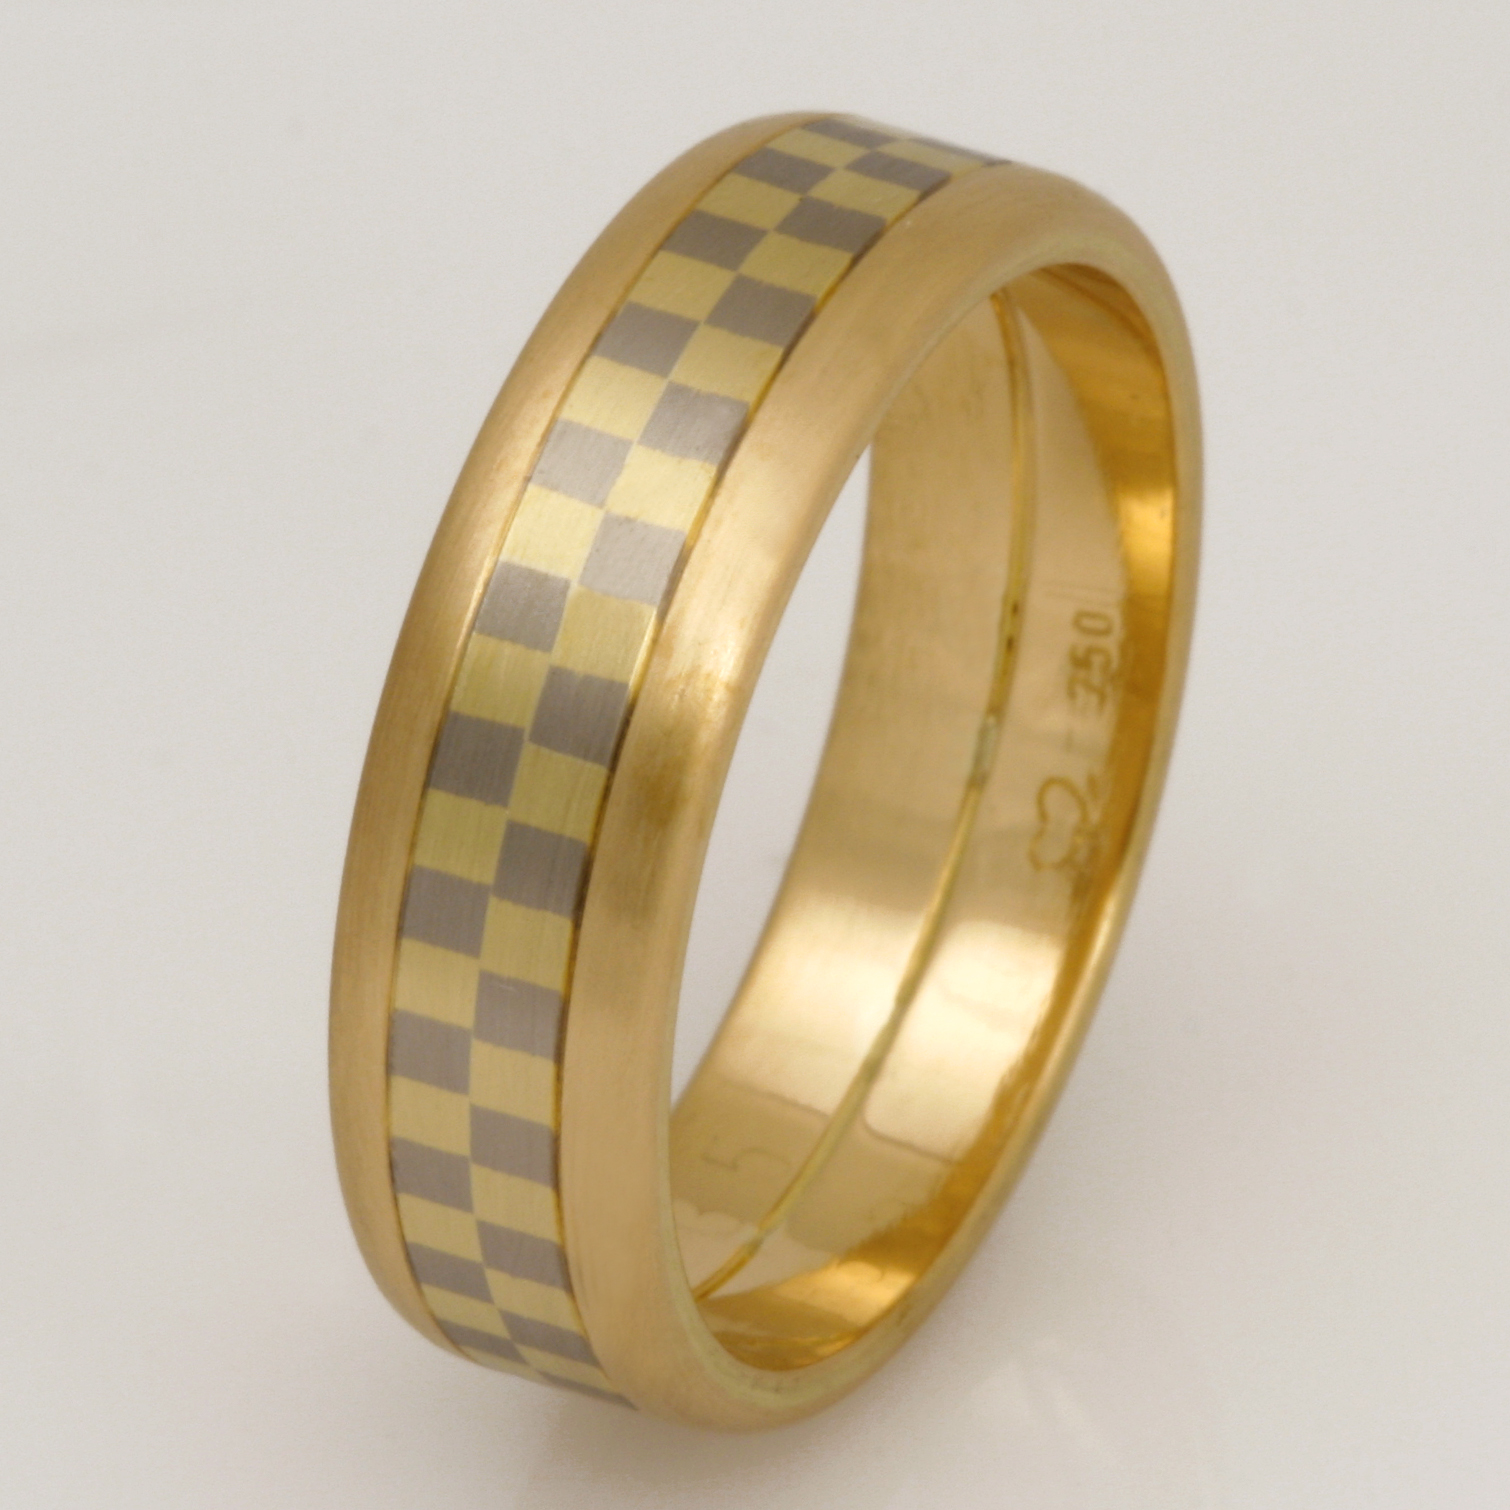 Handmade gents 18ct yellow ring featuring an 18ct yellow and white gold checkered middle inlay.